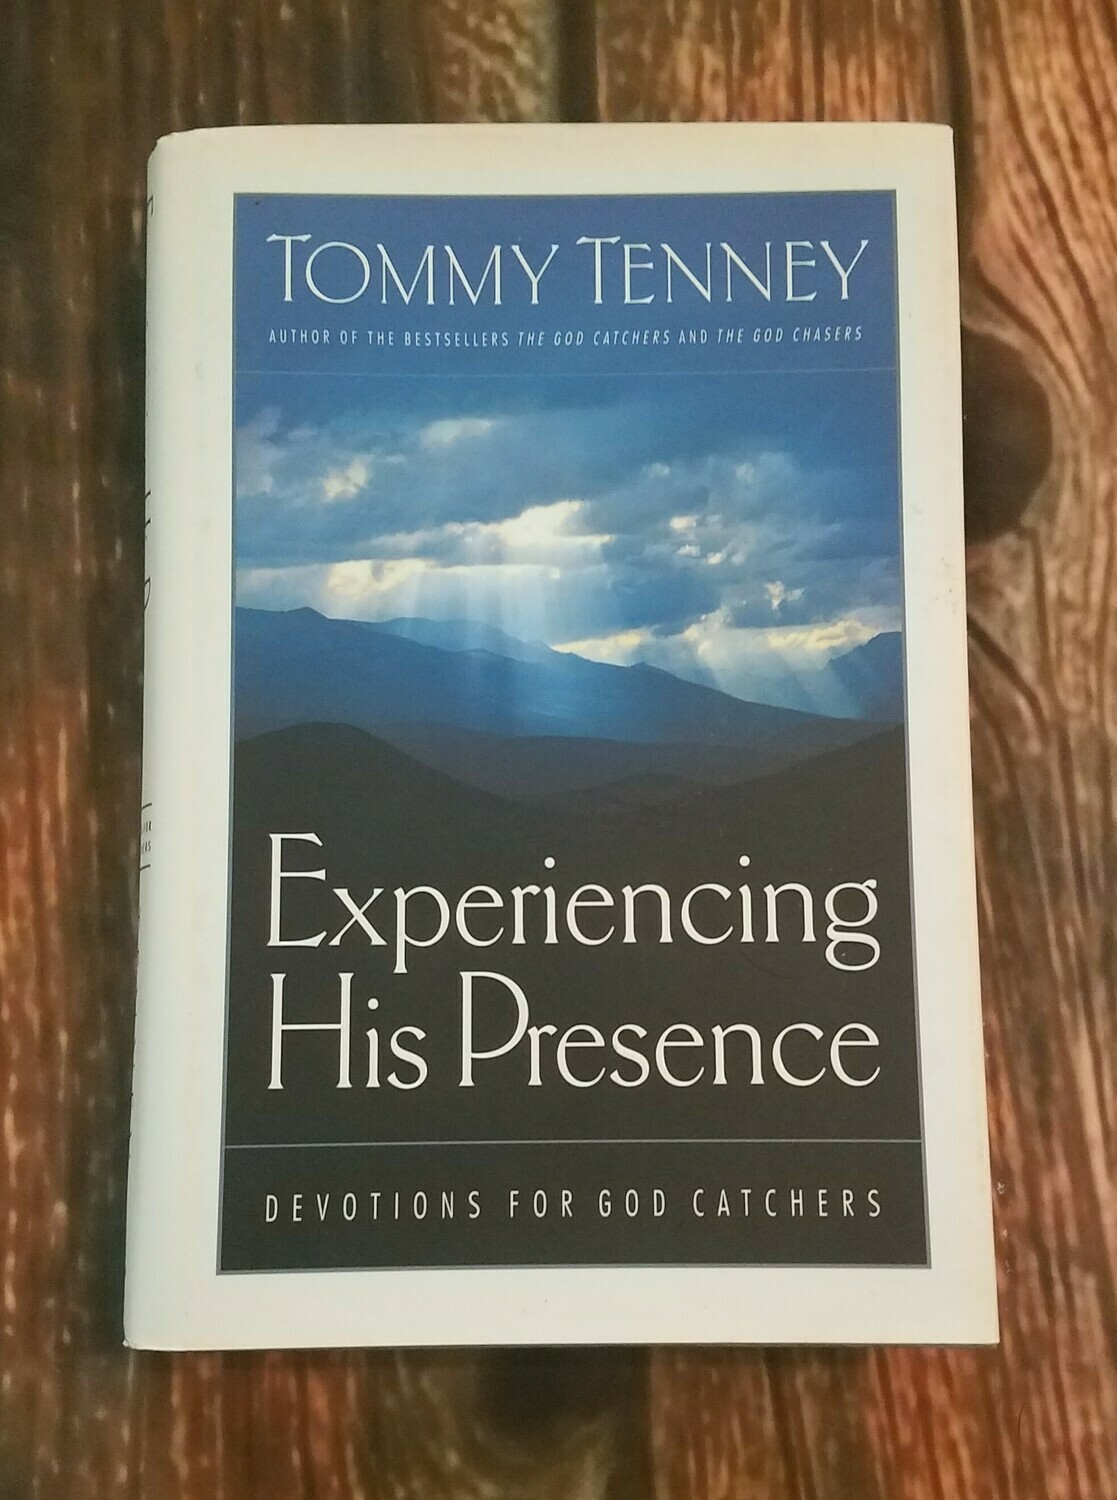 Experiencing His Presence by Tommy Tenney